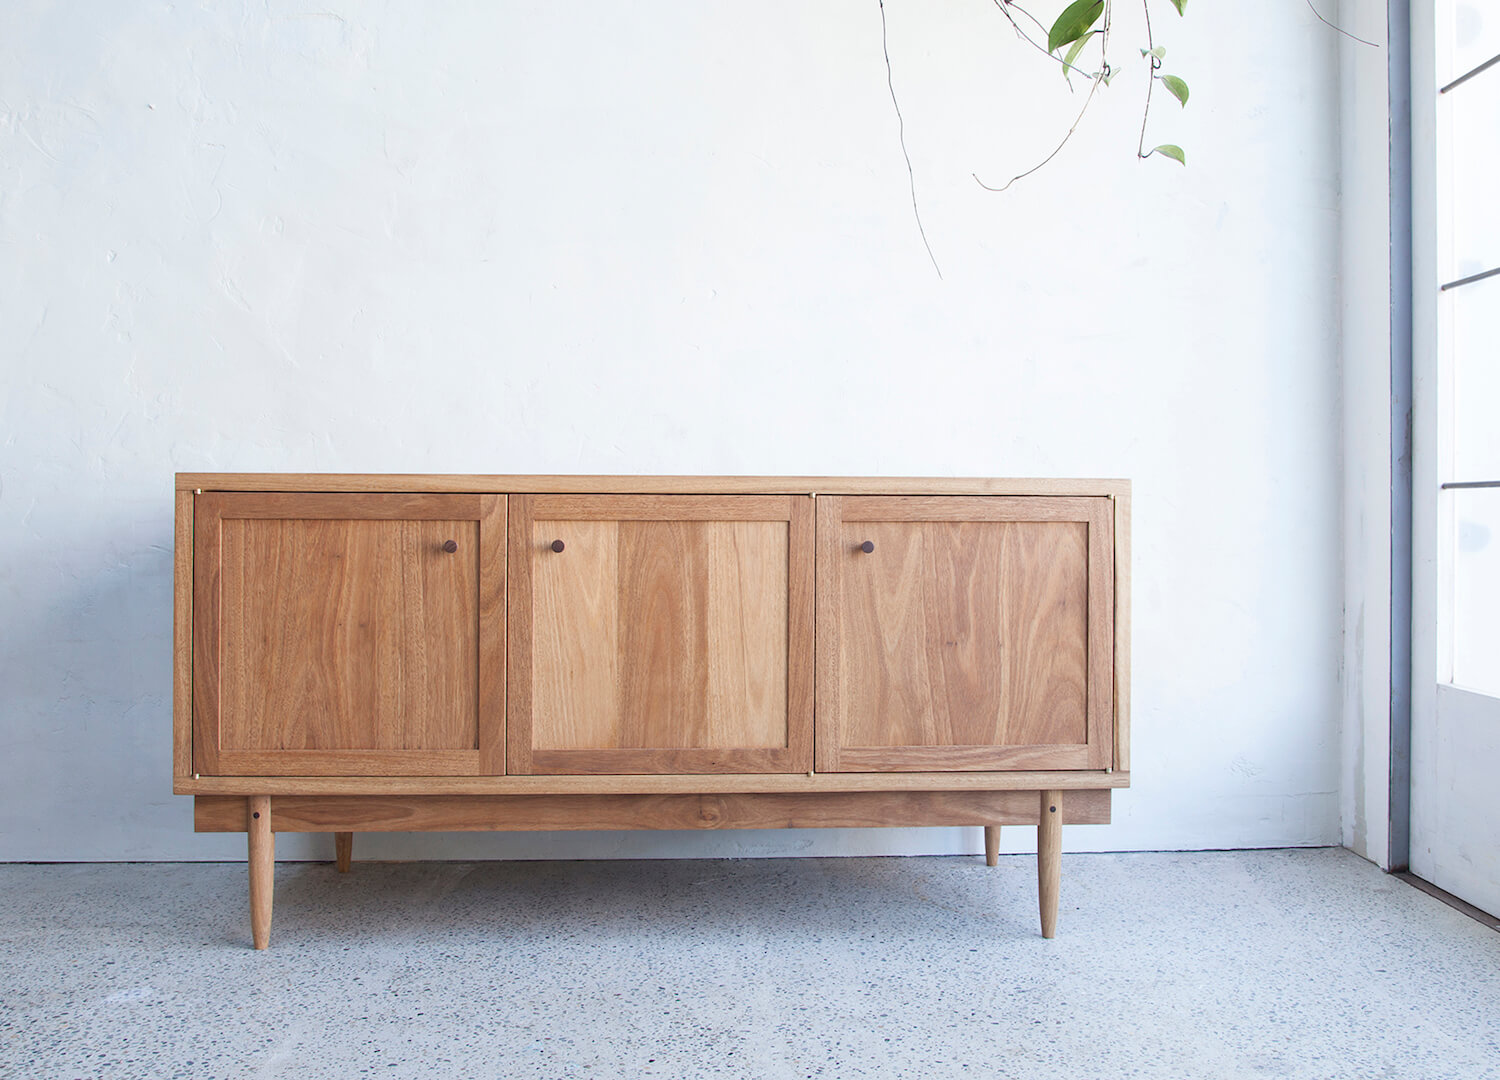 est living denfair discovery interview fred kimel jonathan west the ned sideboard